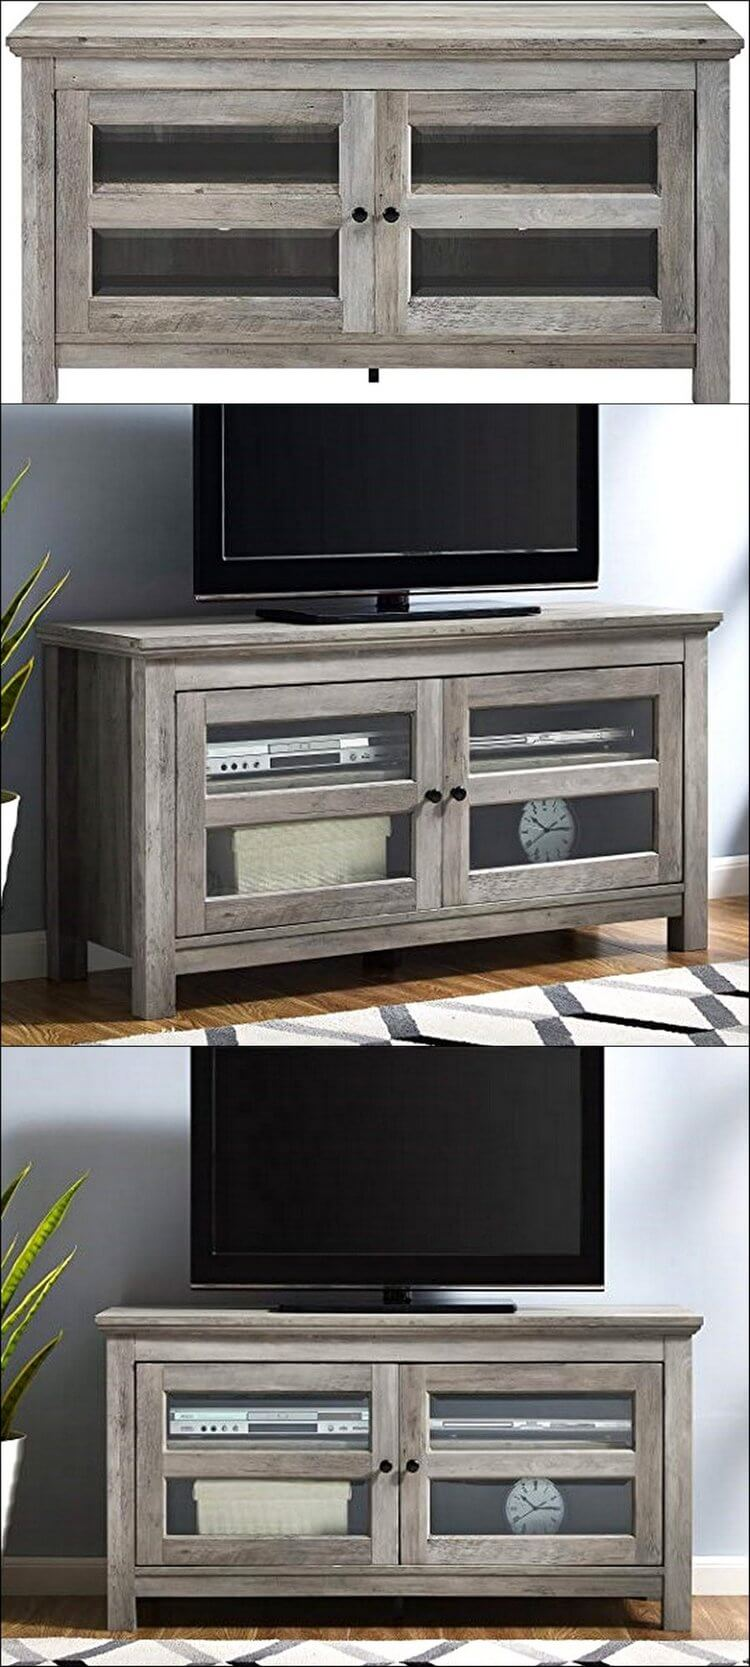 Best Rustic Tv Stands To Decor Your Living Rooms Rustic Home Decor And Design Ideas